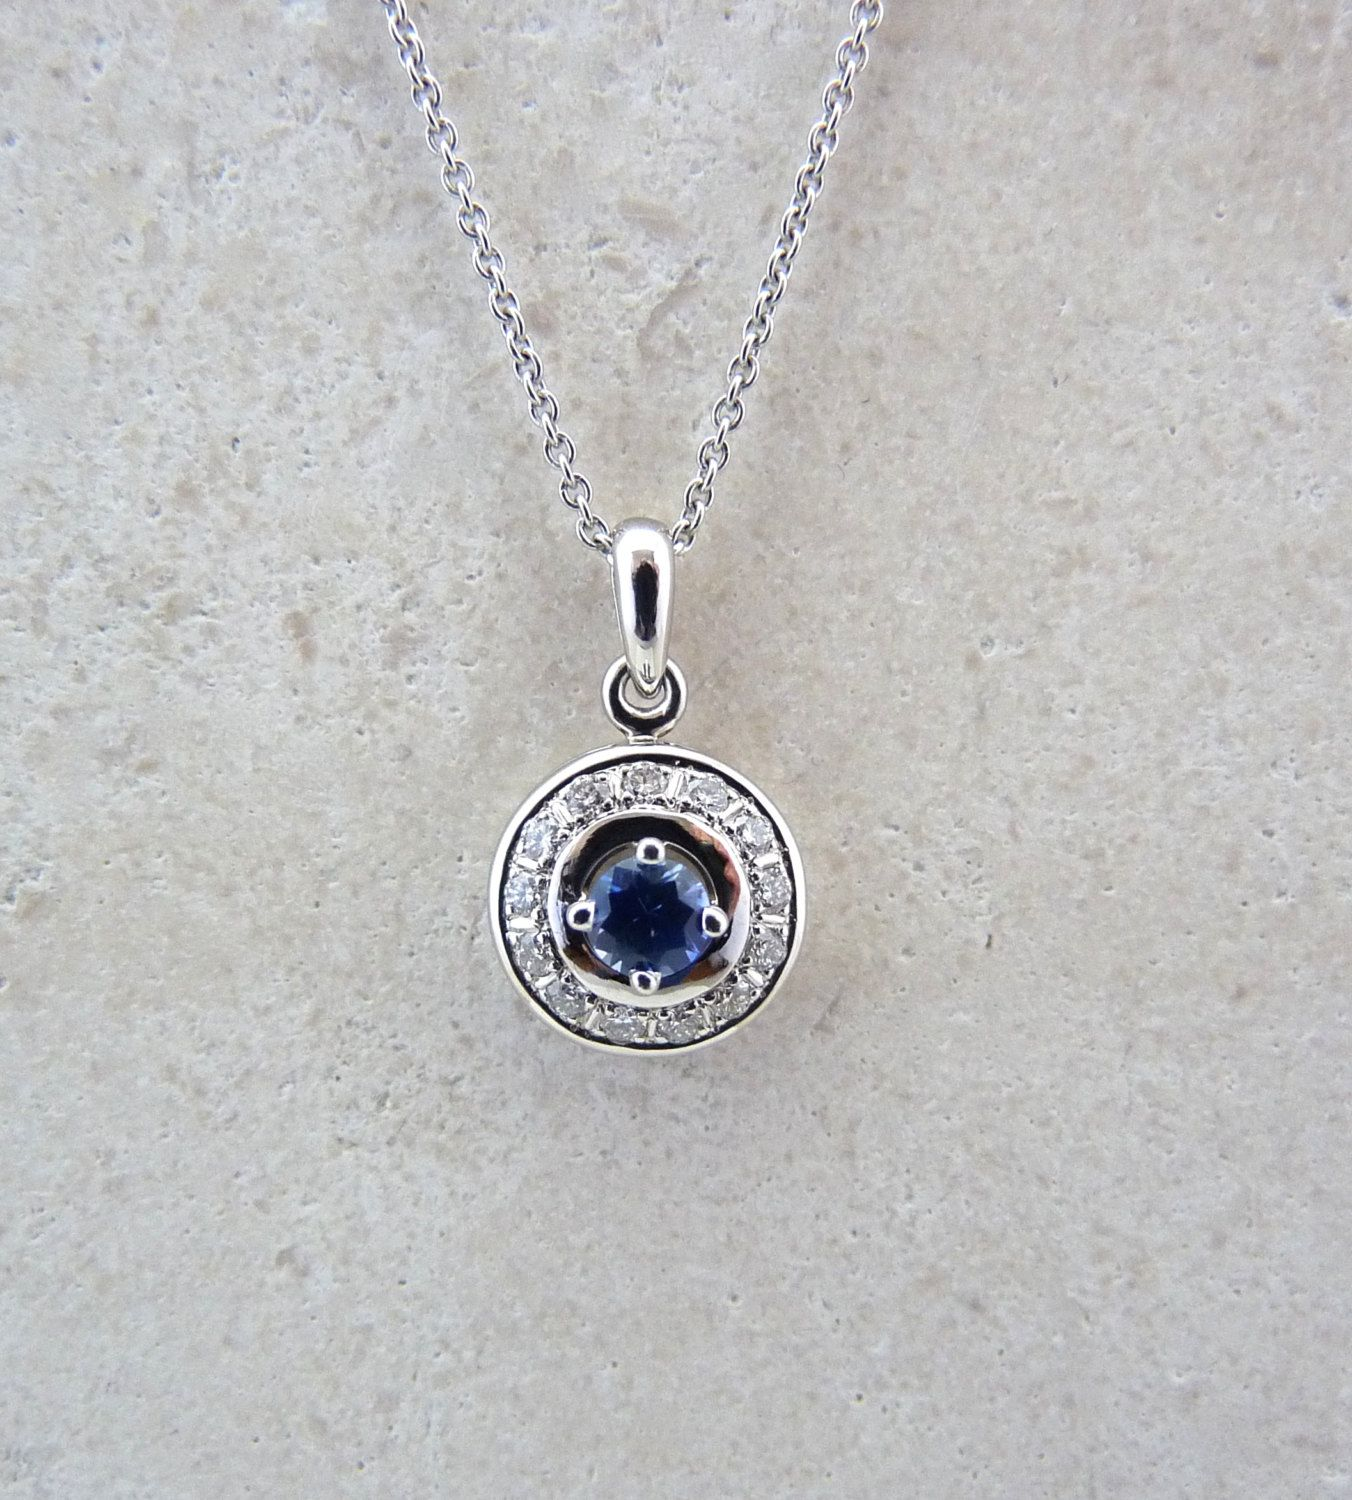 Blue sapphire pendant sapphire pendant blue stone pendant blue sapphire pendant sapphire pendant blue stone pendant sapphire and diamond gold pendant aloadofball Image collections